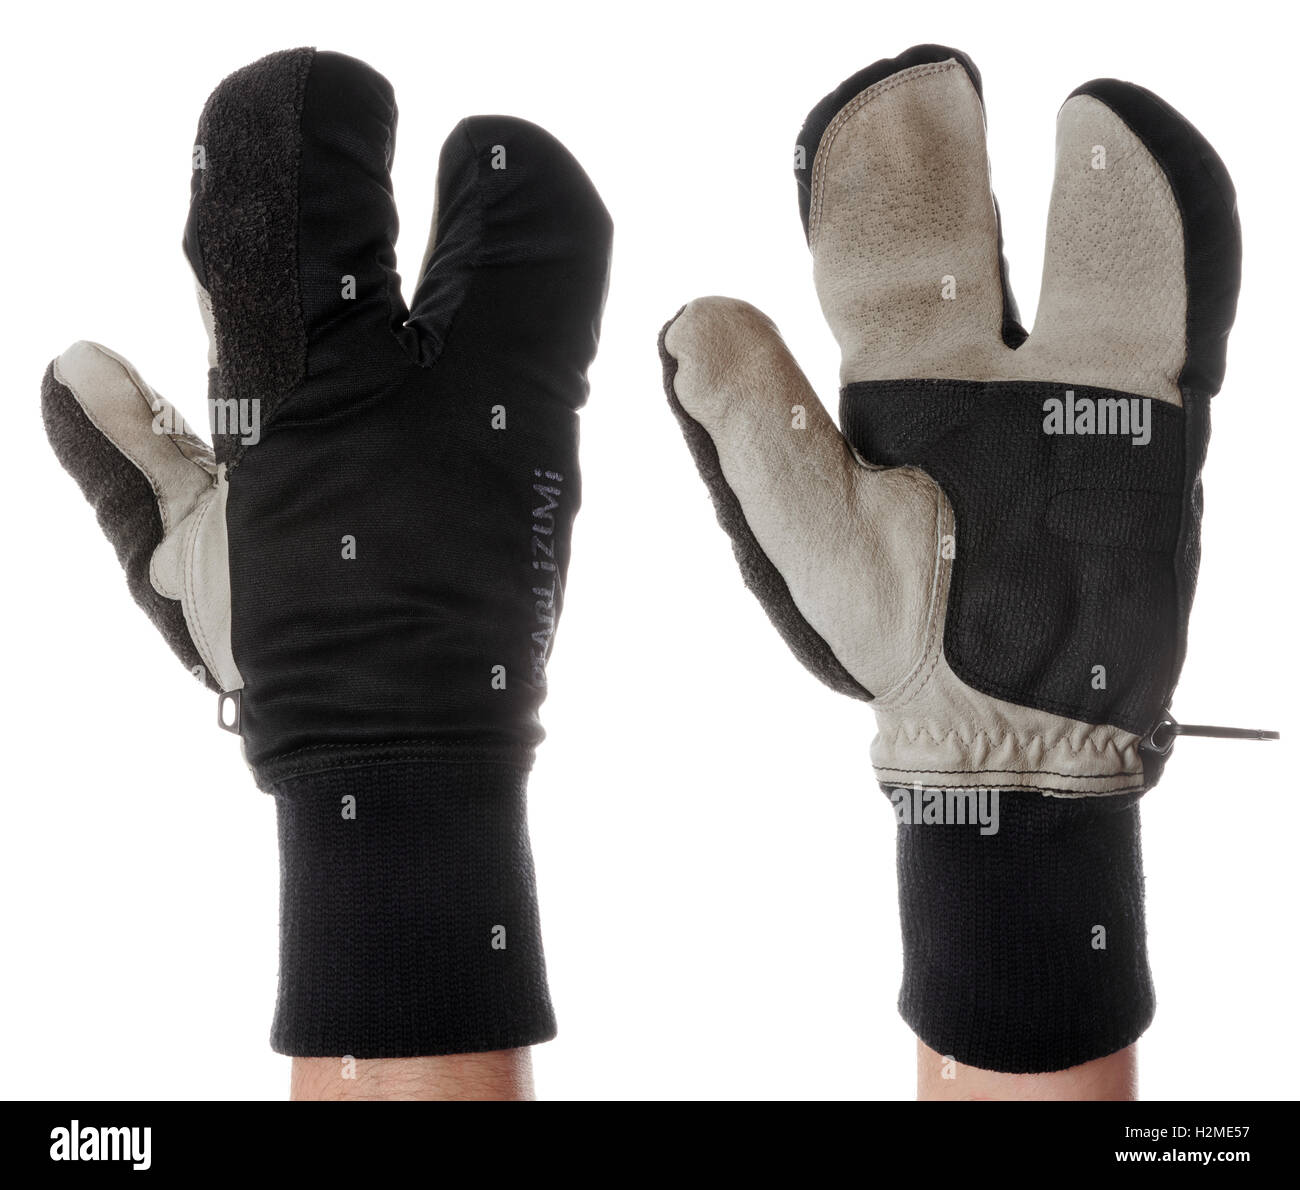 Cycling lobster claw glove on white background - Stock Image